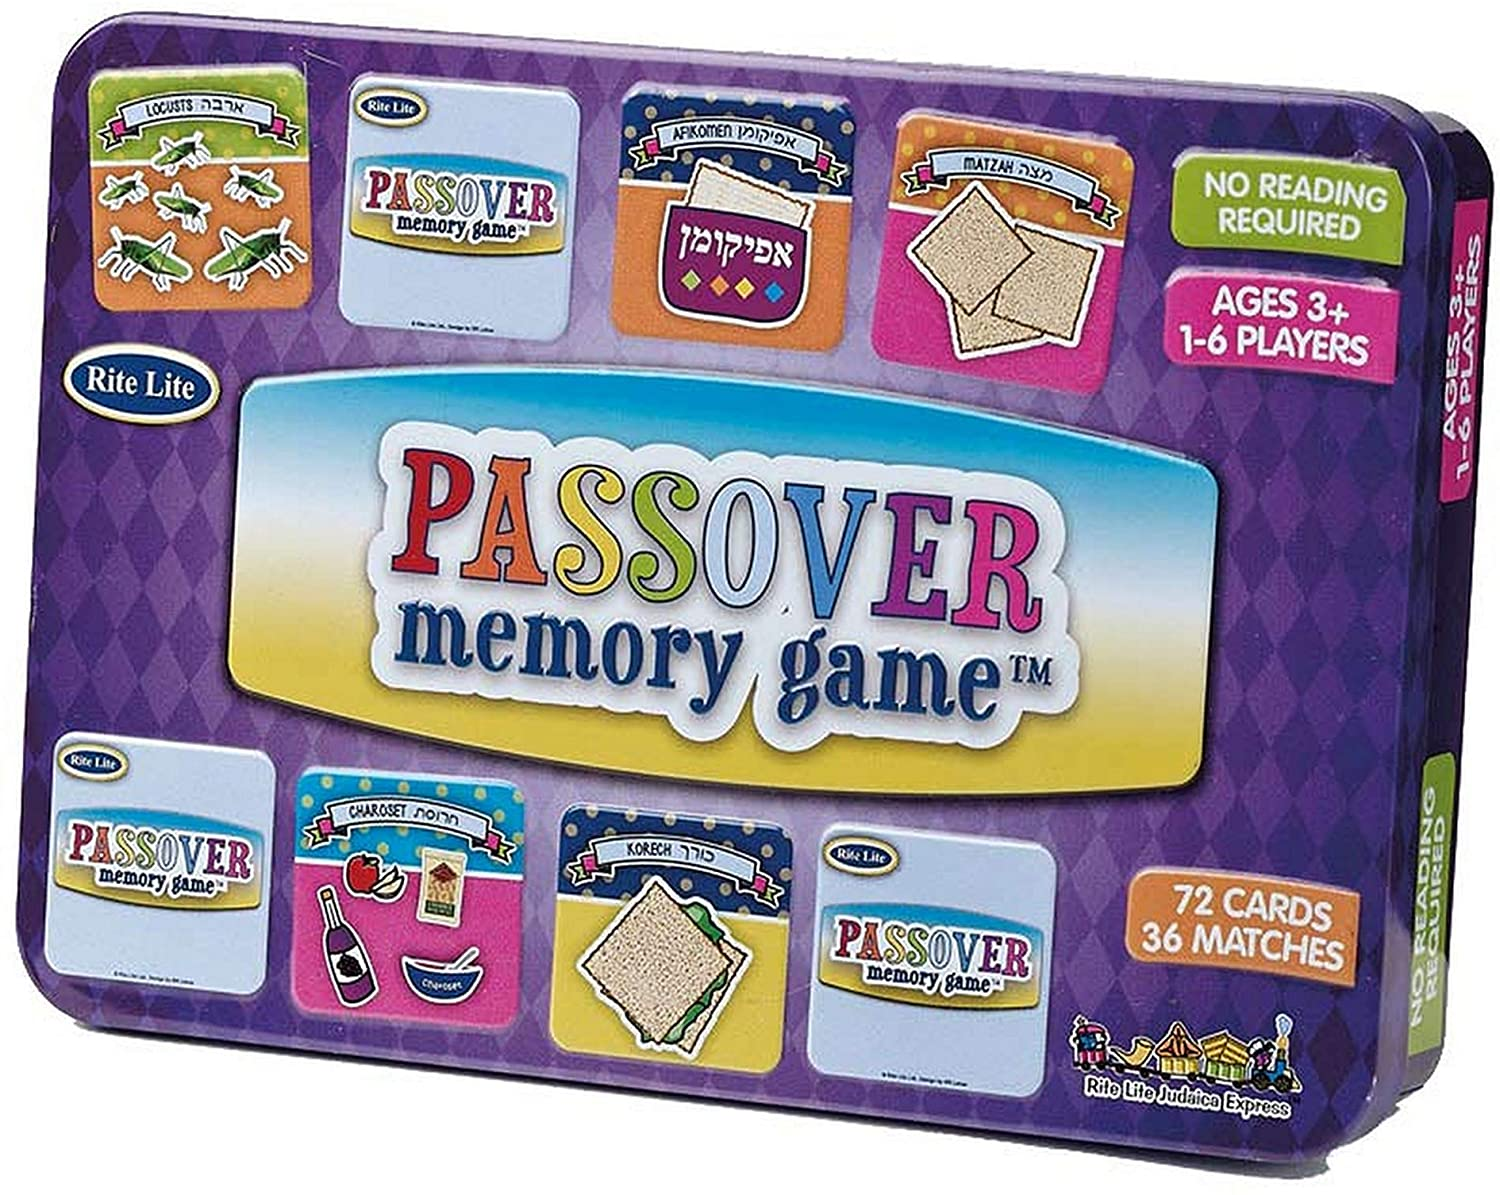 Rite Lite Passover Memory Game Collectible Tin Pack of 72 Cards